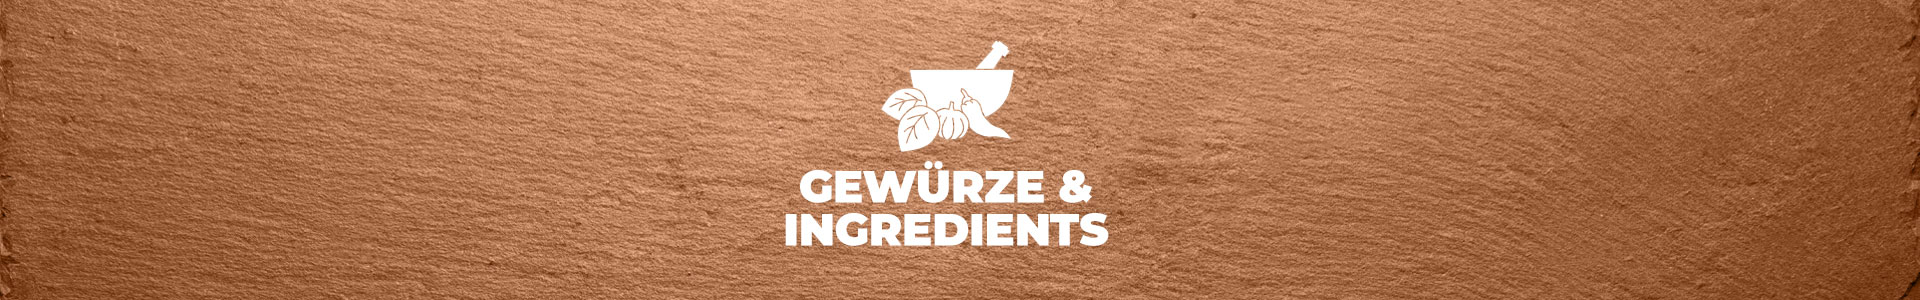 Gewürze & Ingredients